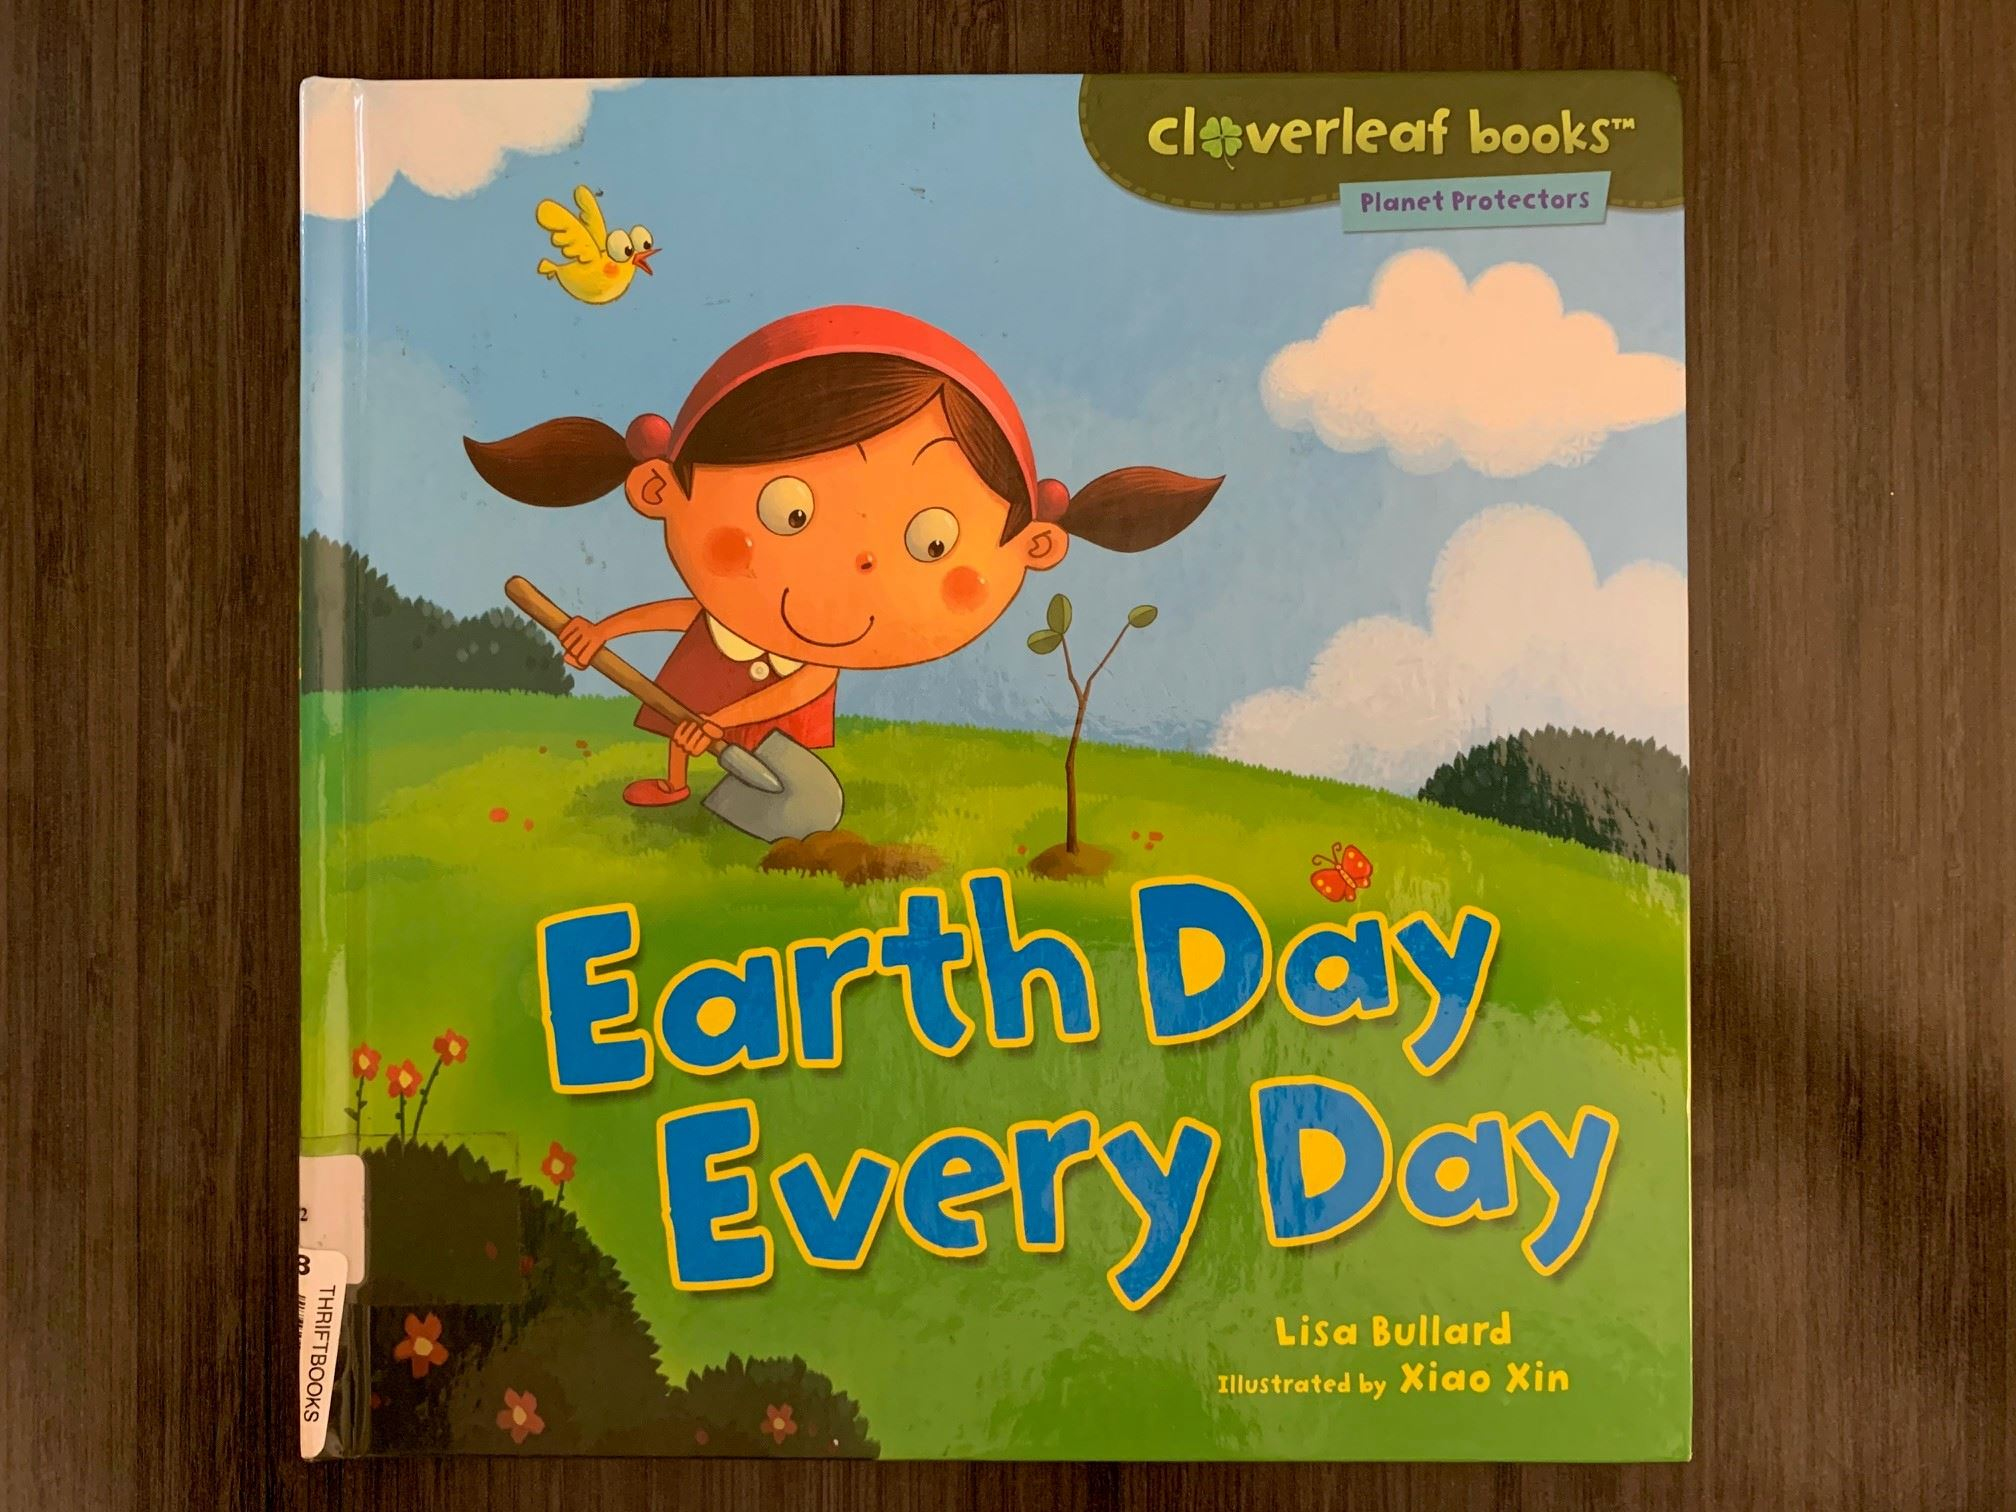 Book 34 - Earth Day Every Day